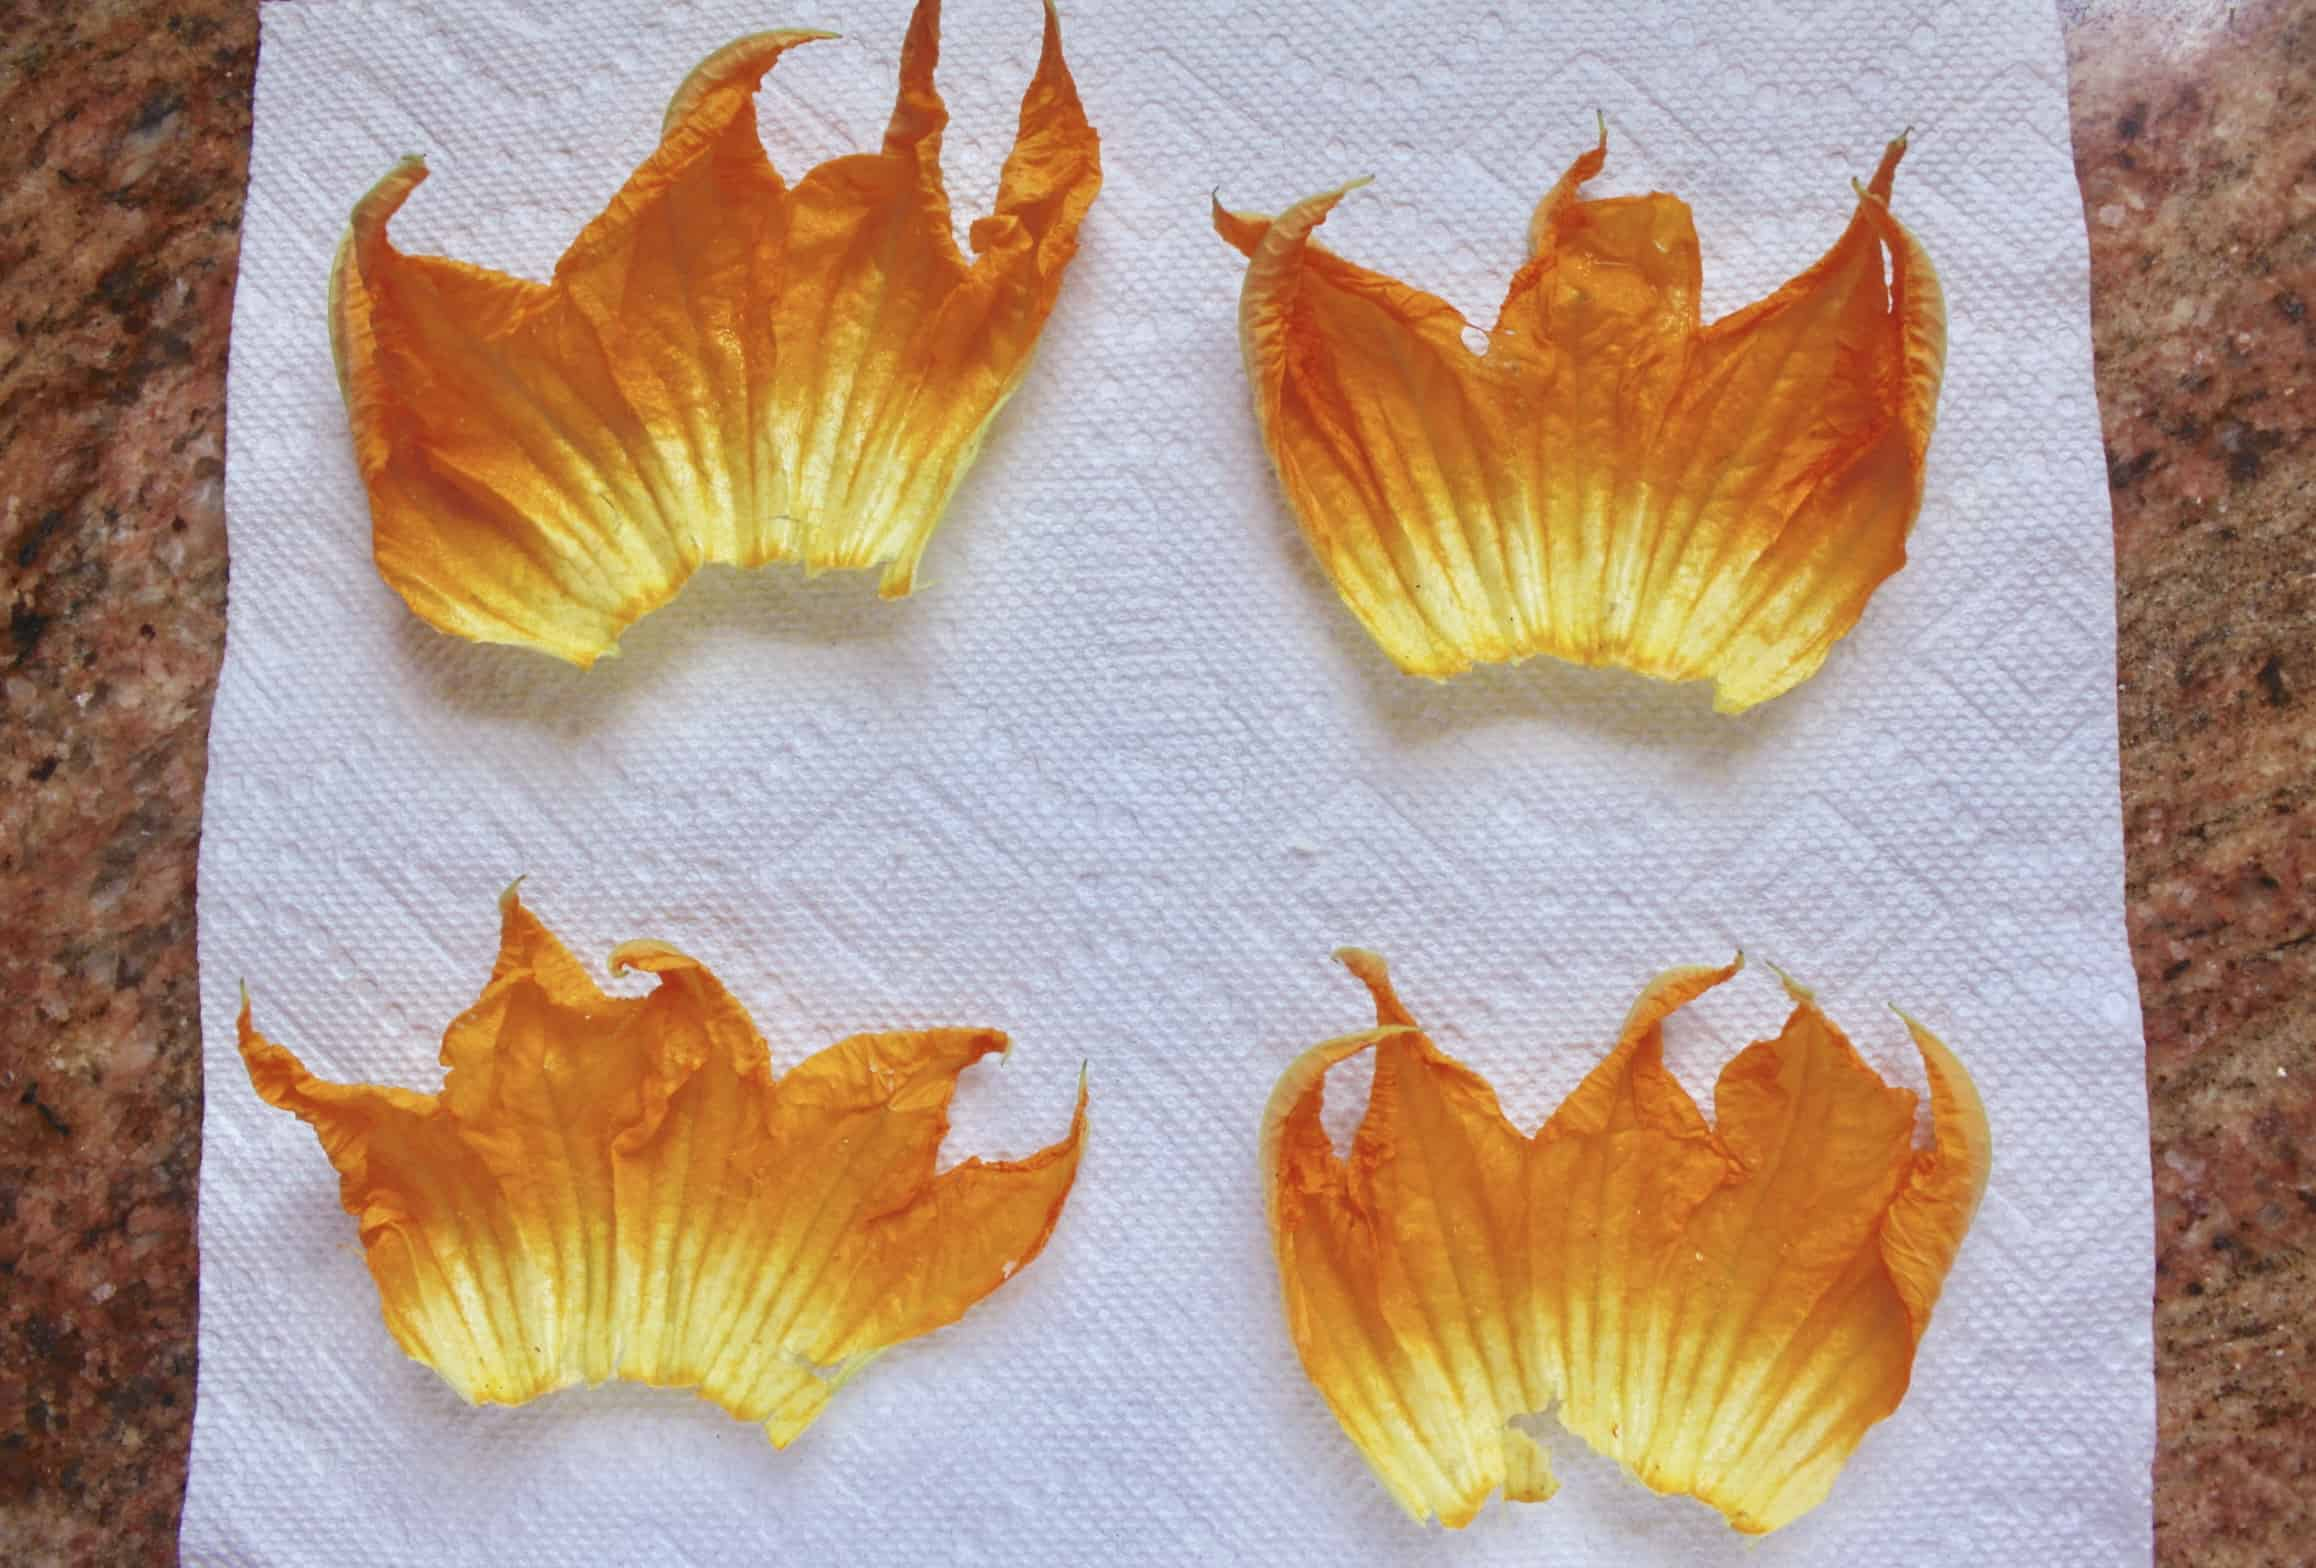 zucchini flowers on a paper towel